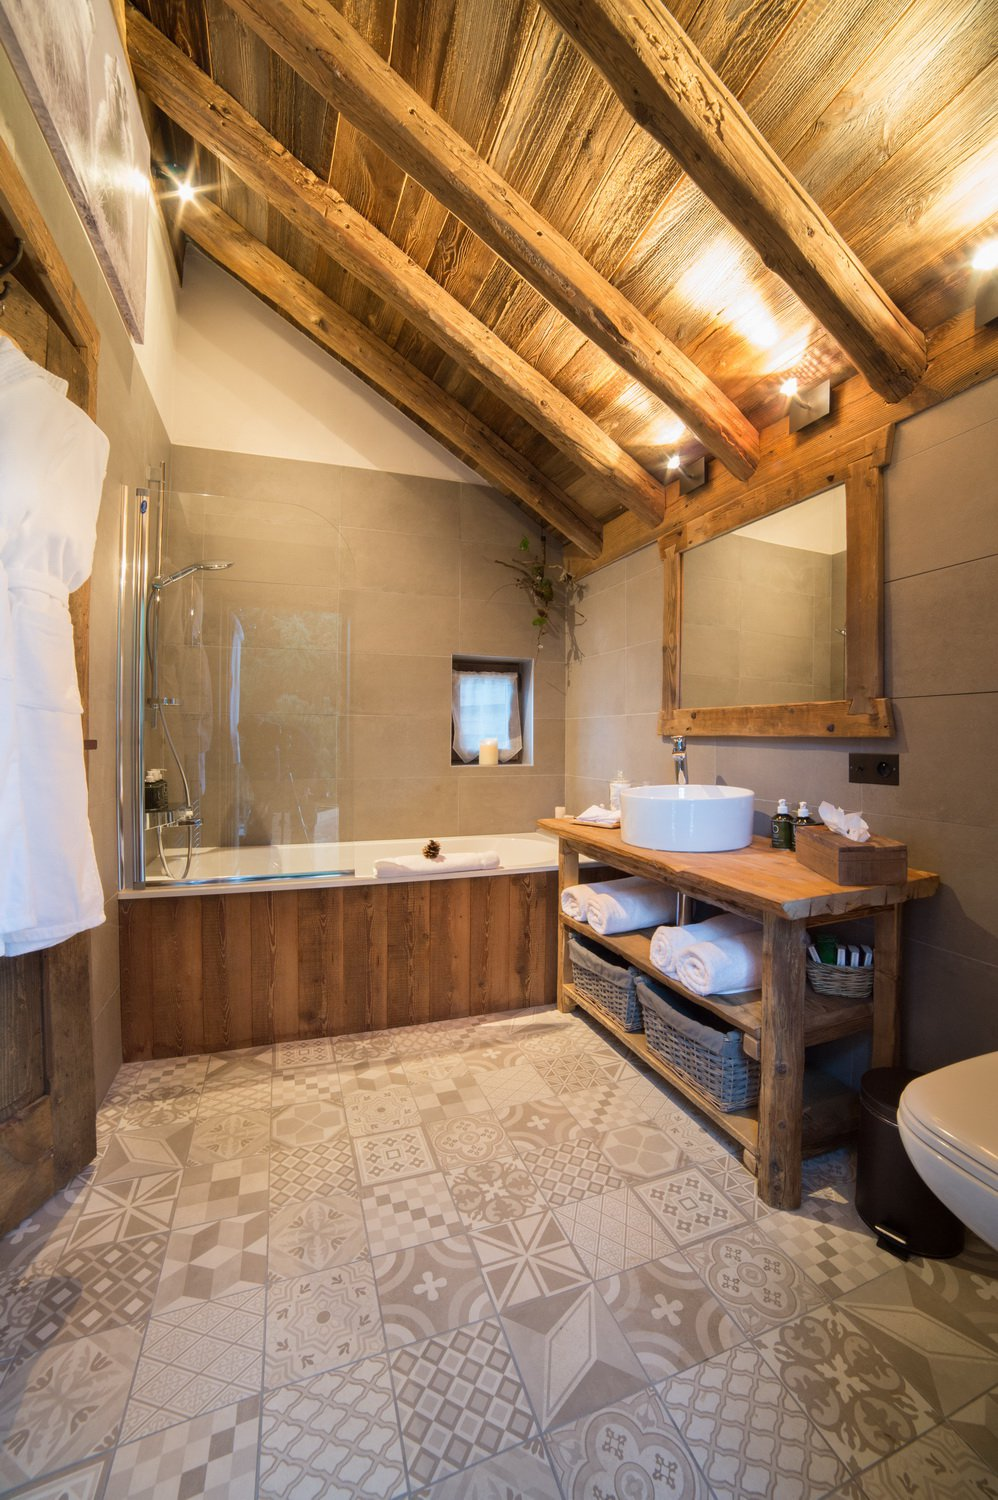 Villa / Property to Rent in Courchevel, France